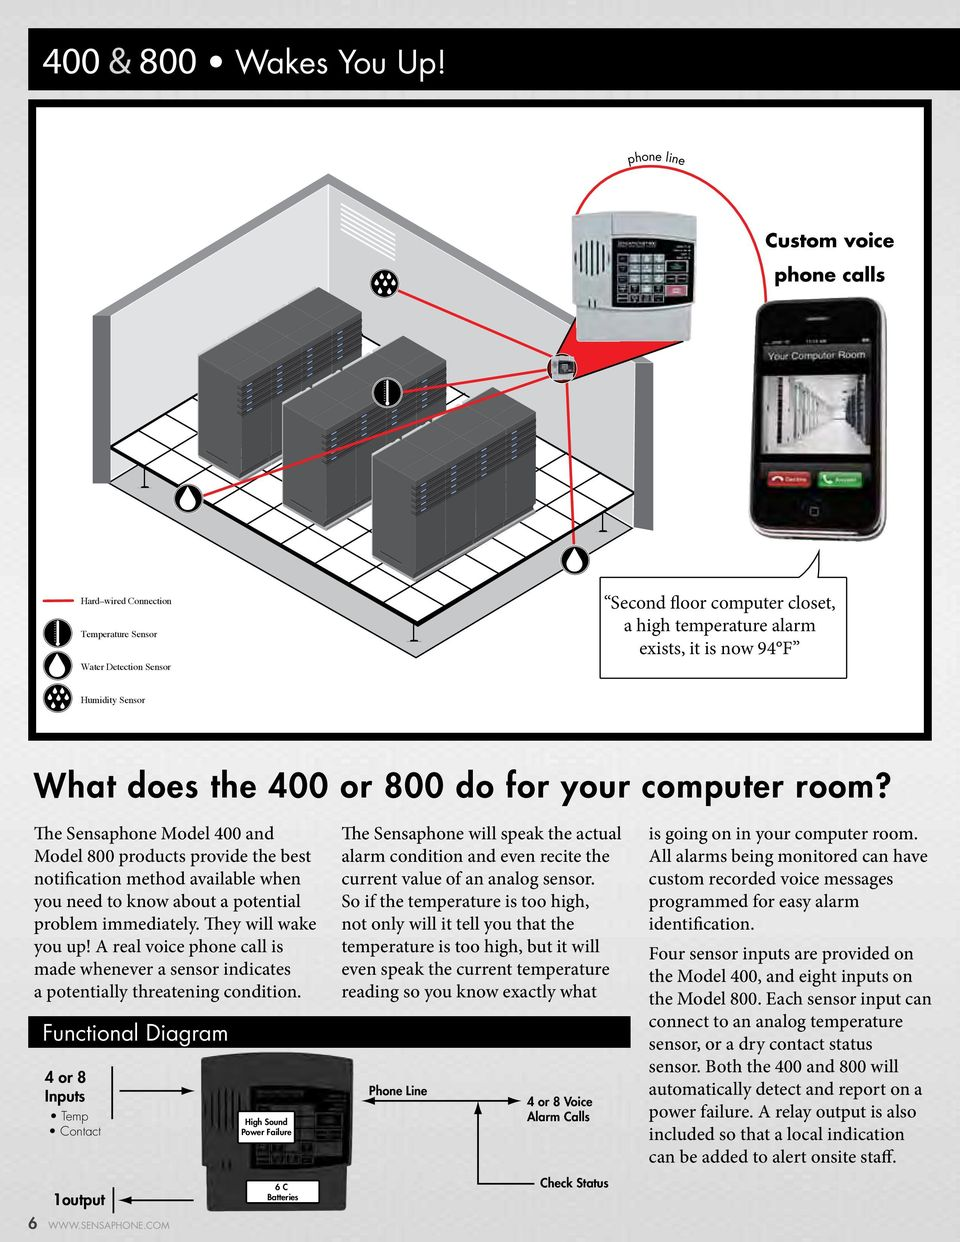 do for your computer room? The Sensaphone Model 400 and Model 800 products provide the best notification method available when you need to know about a potential problem immediately.